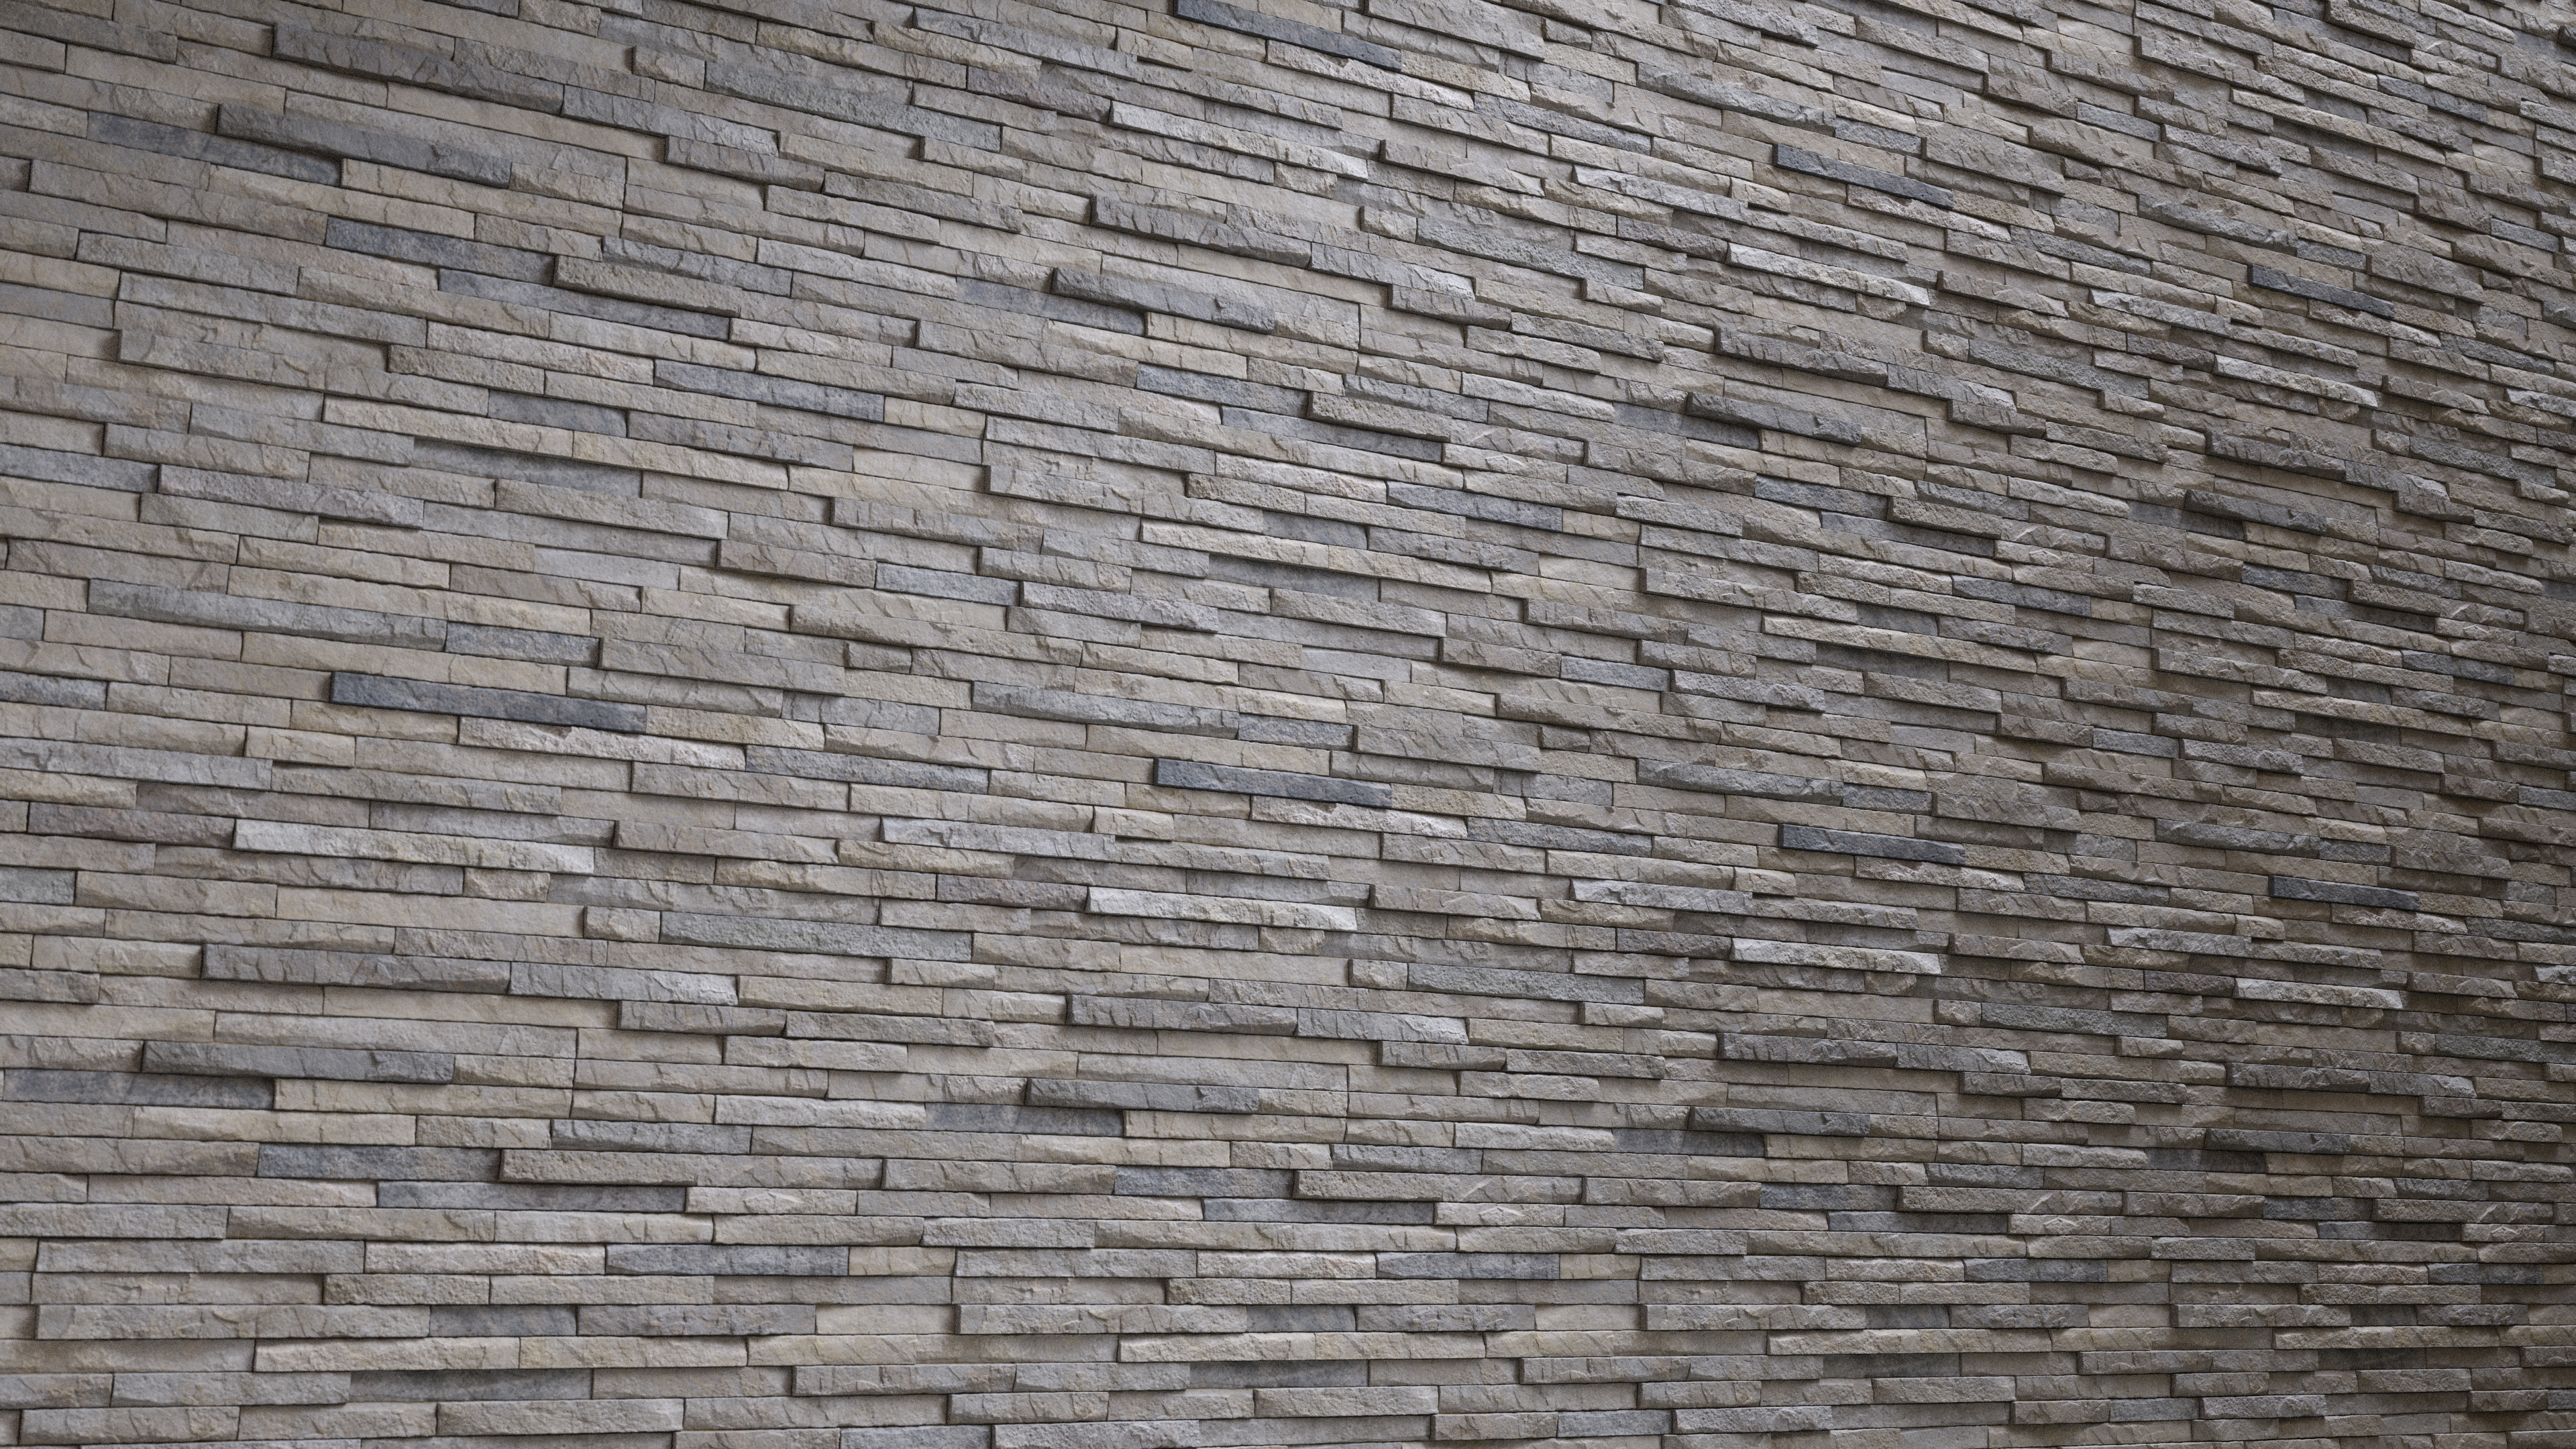 Stacked Stone Wall Cladding - PBR0312